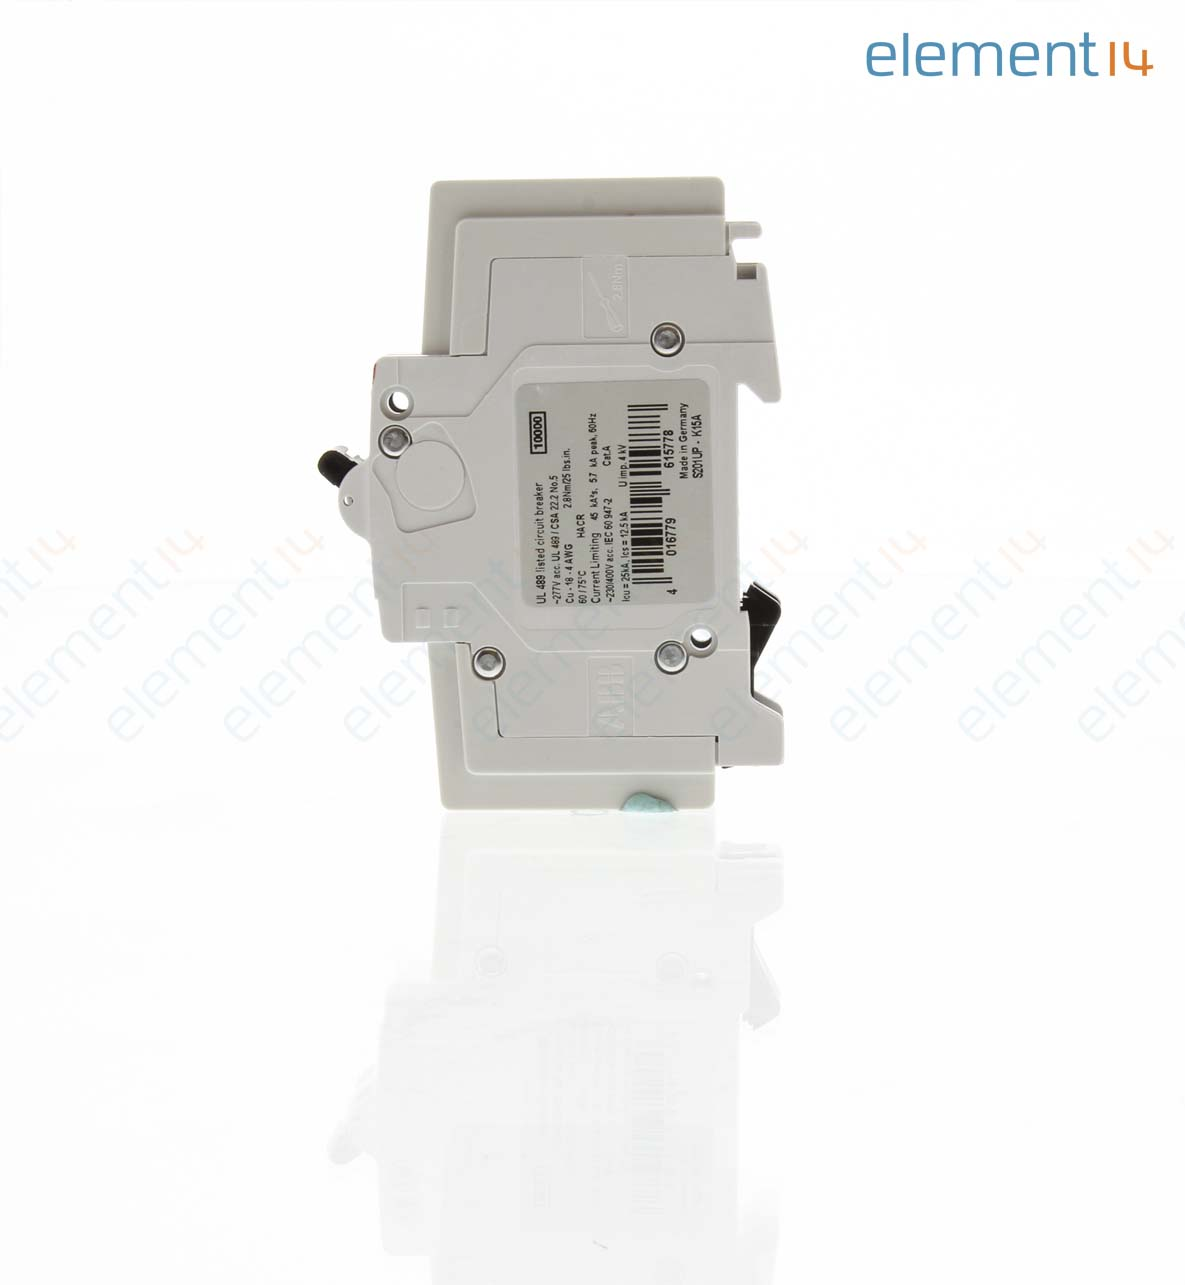 S201up K15 Abb Thermal Magnetic Circuit Breaker Miniature Under Current Relay Add To Compare